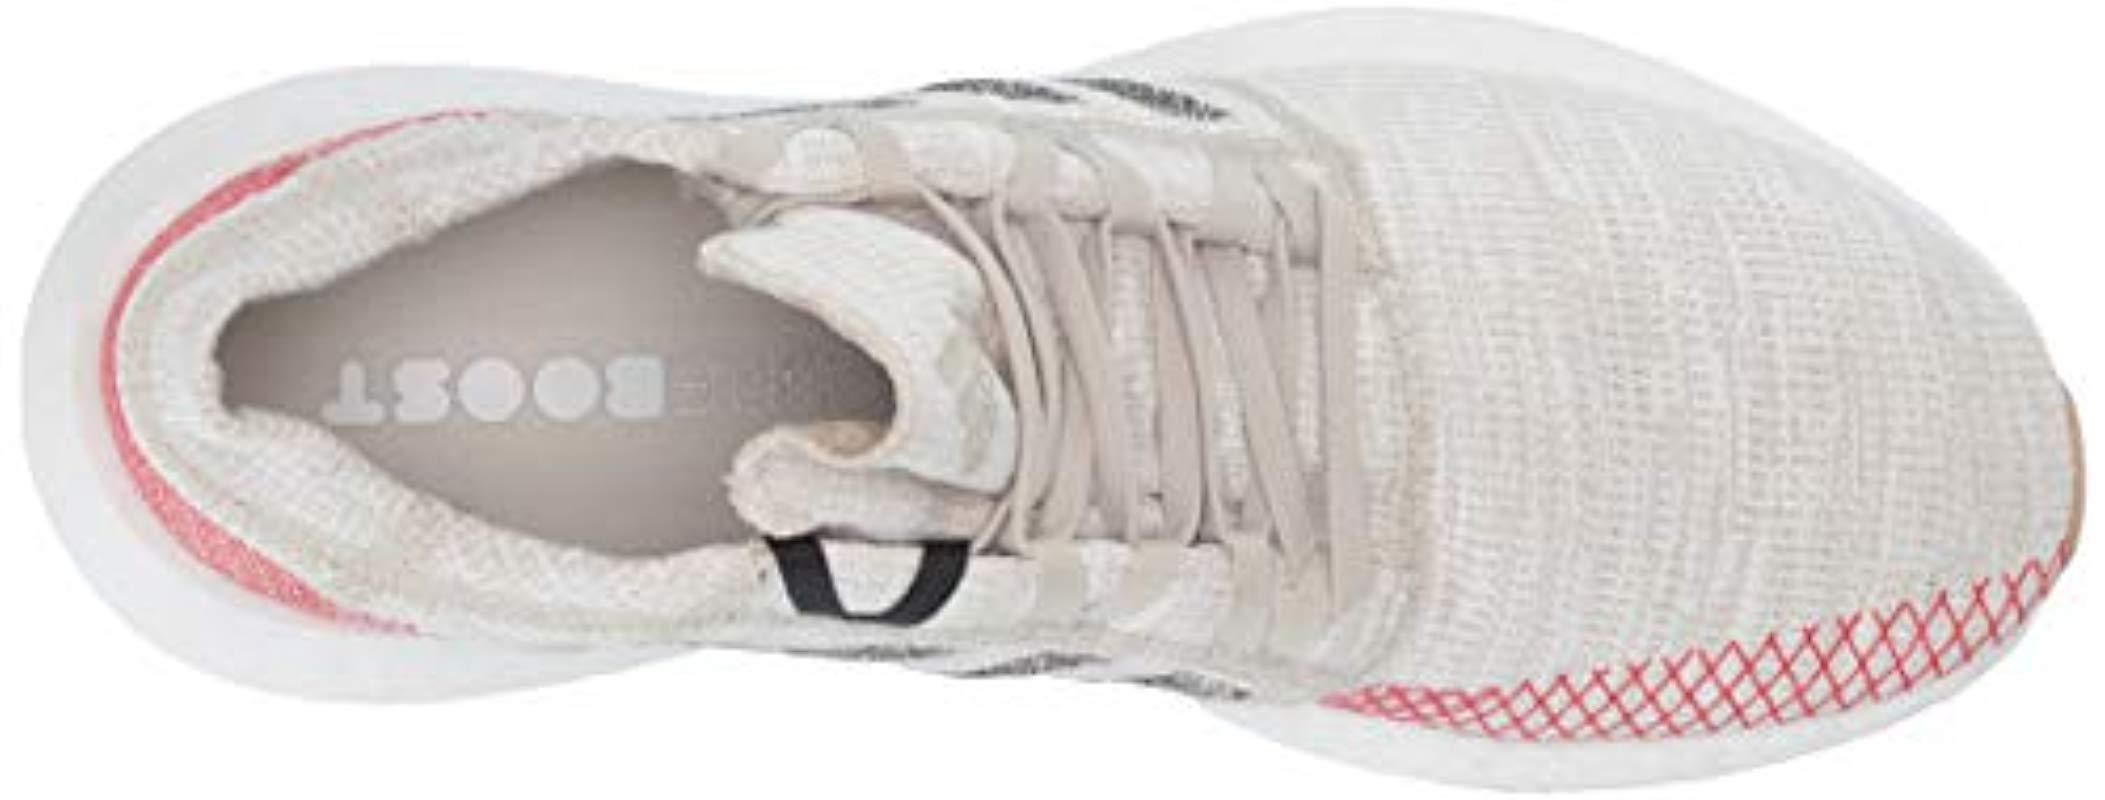 dcf96ee21 Lyst - adidas Pureboost Go for Men